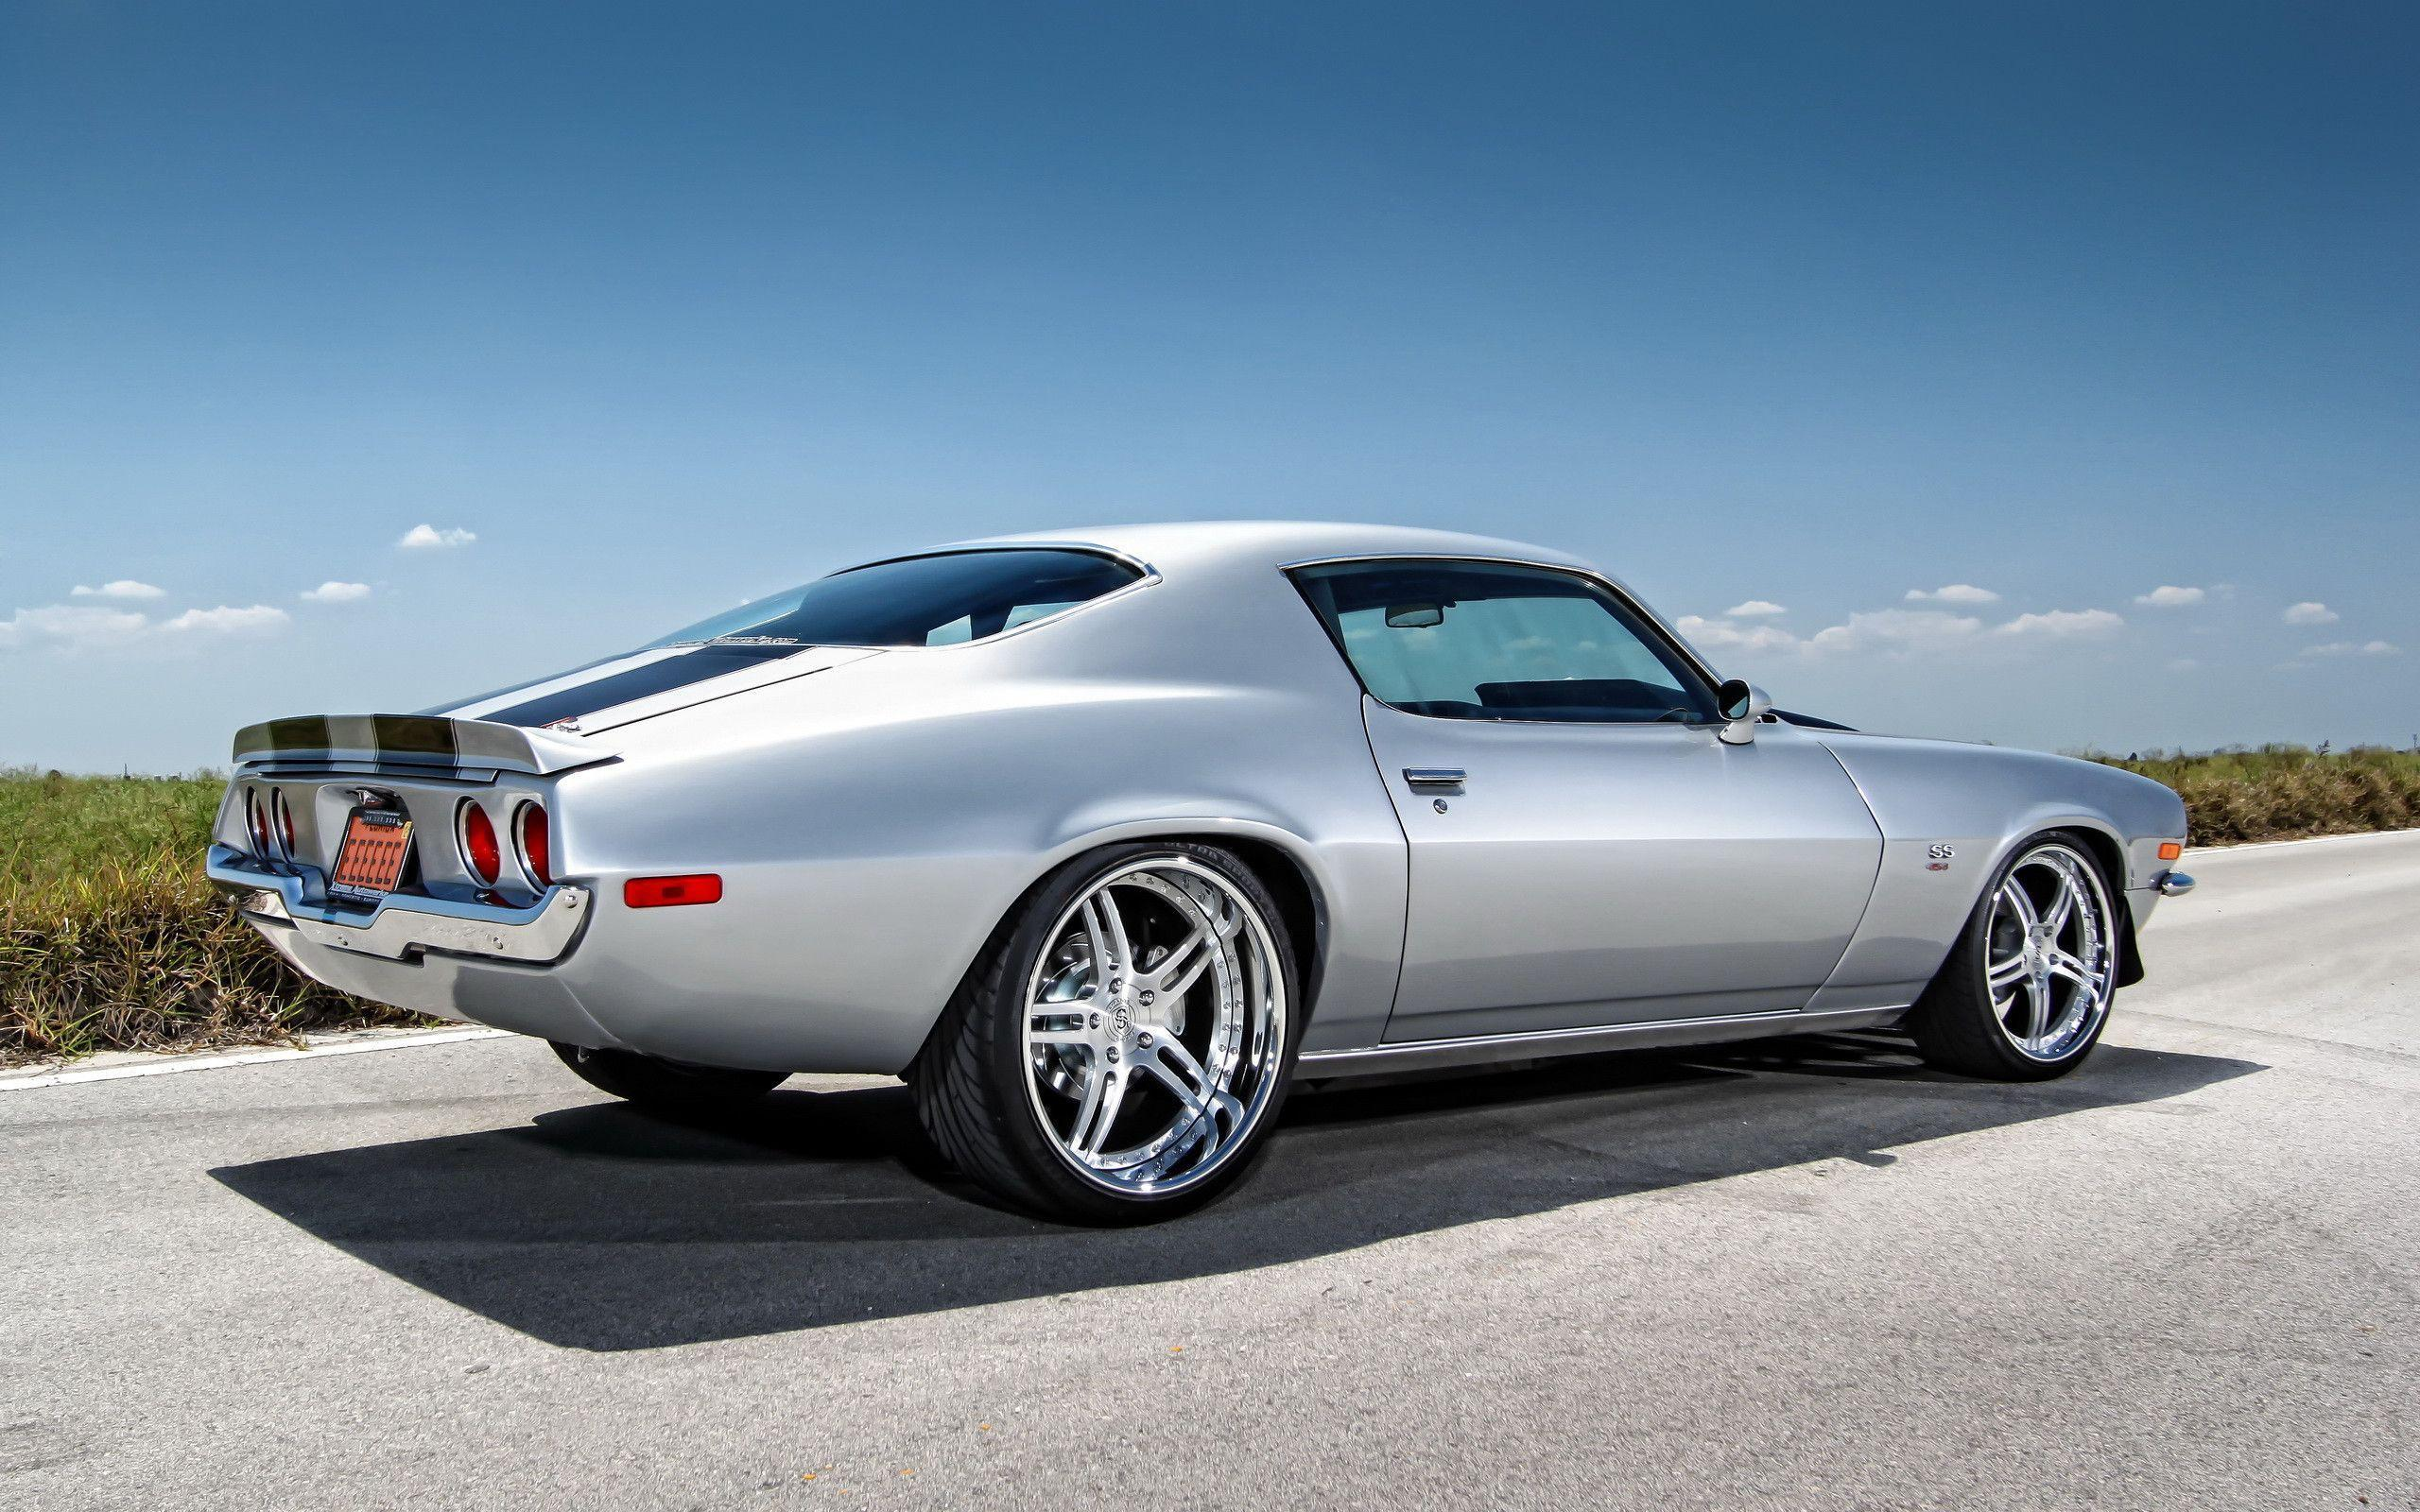 Chevy camaro muscle car Wallpapers Pictures Photos Images ...